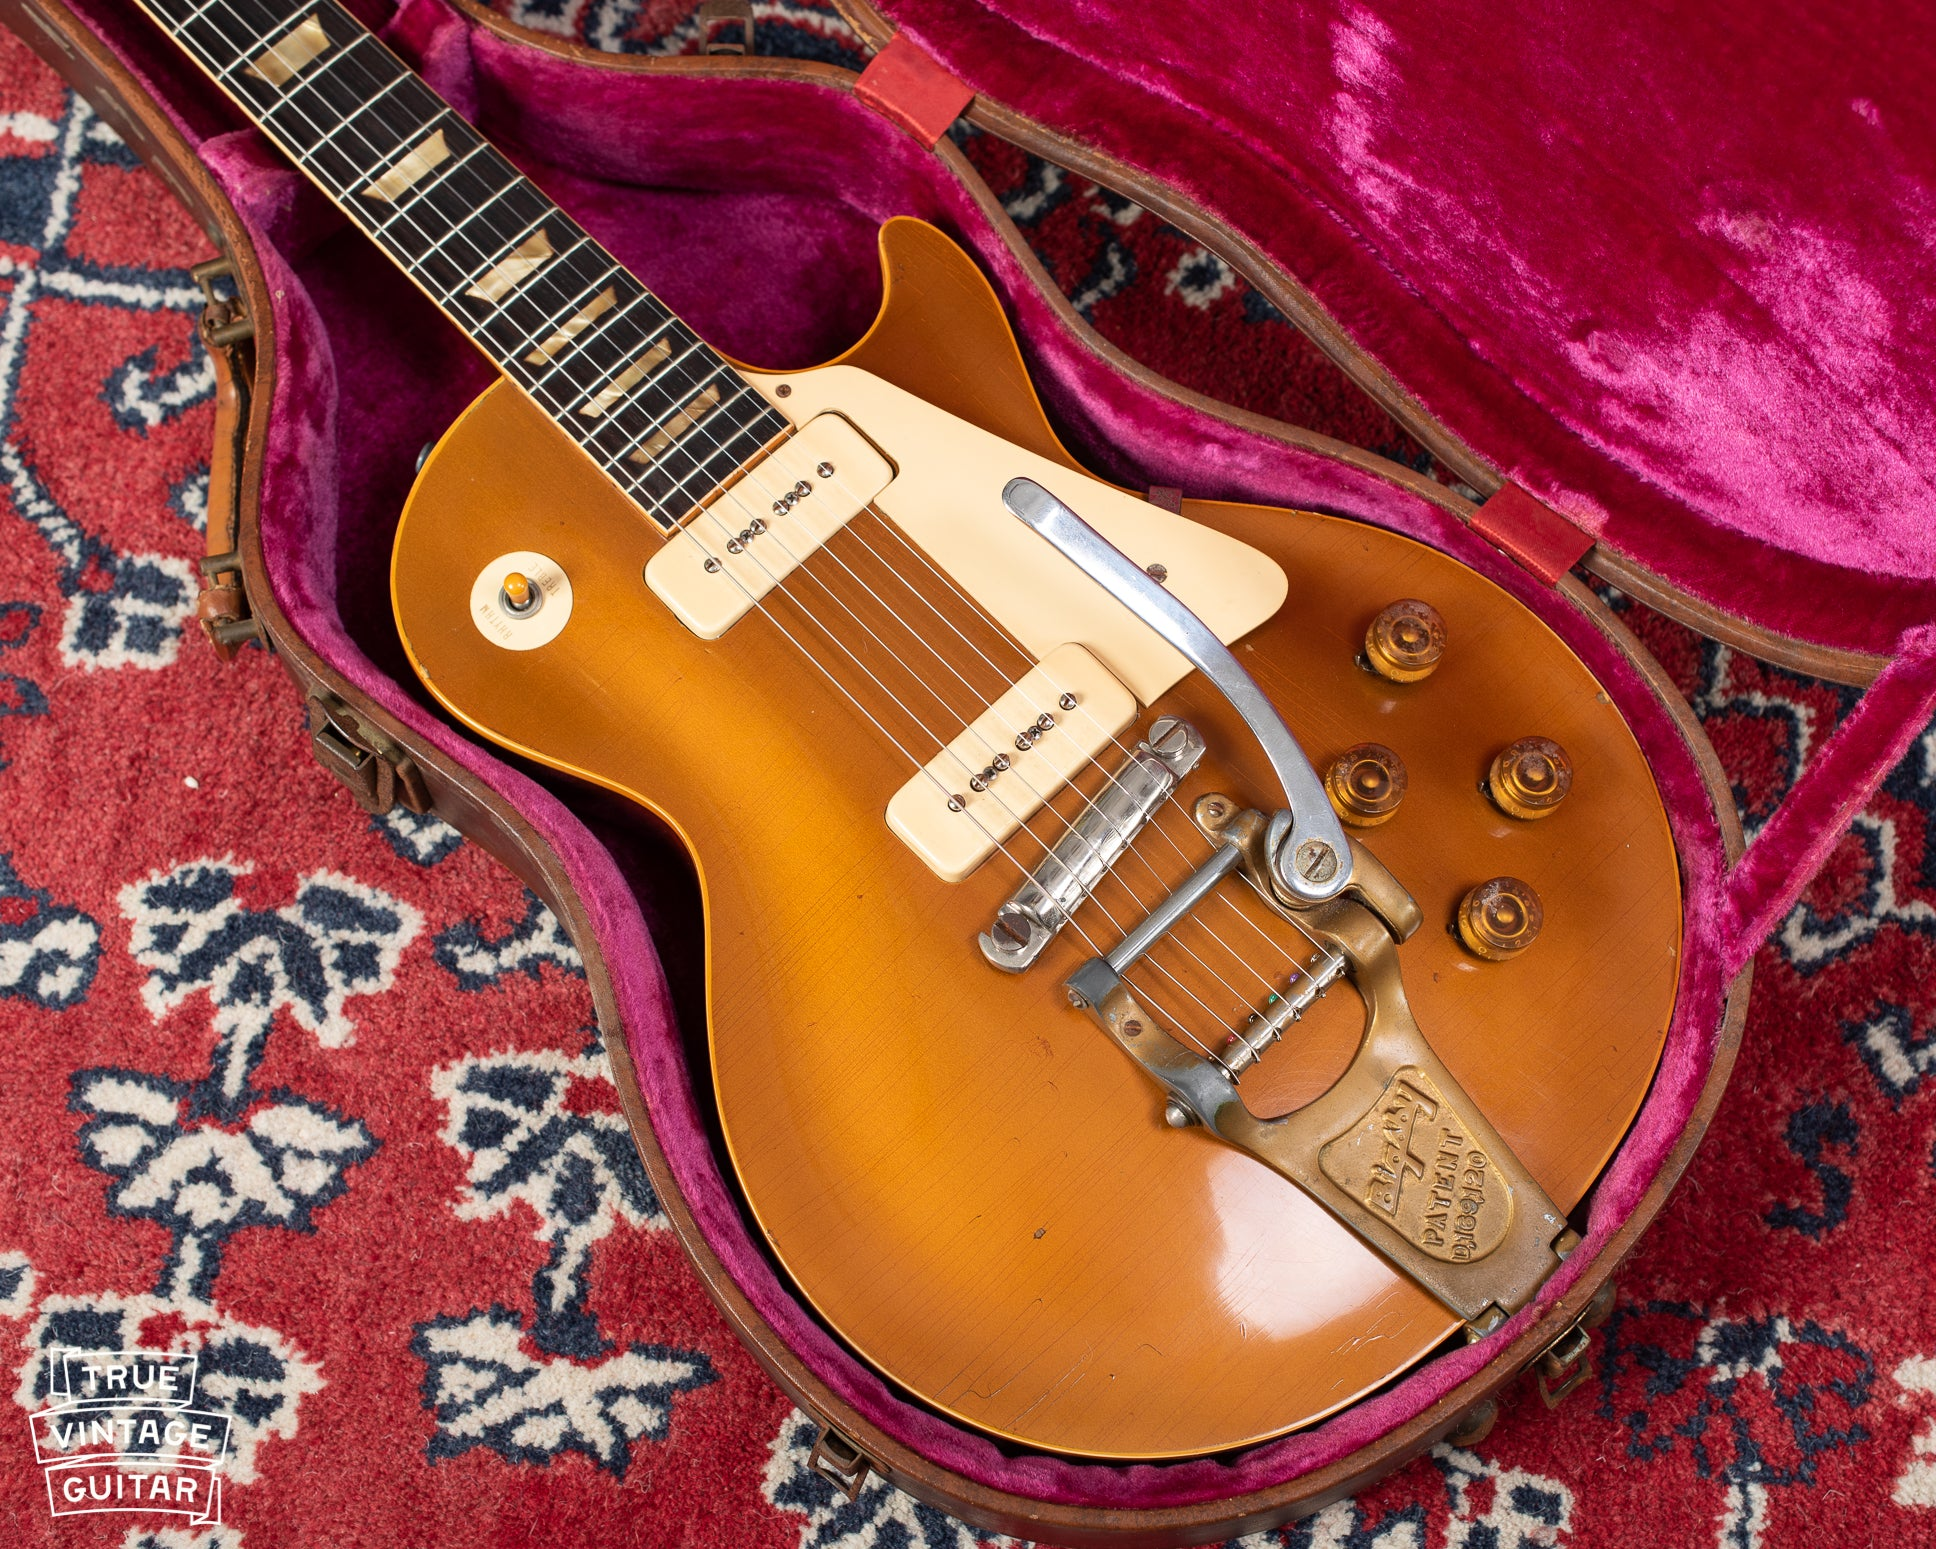 1950s Gibson Les Paul goldtop guitar with Bigsby